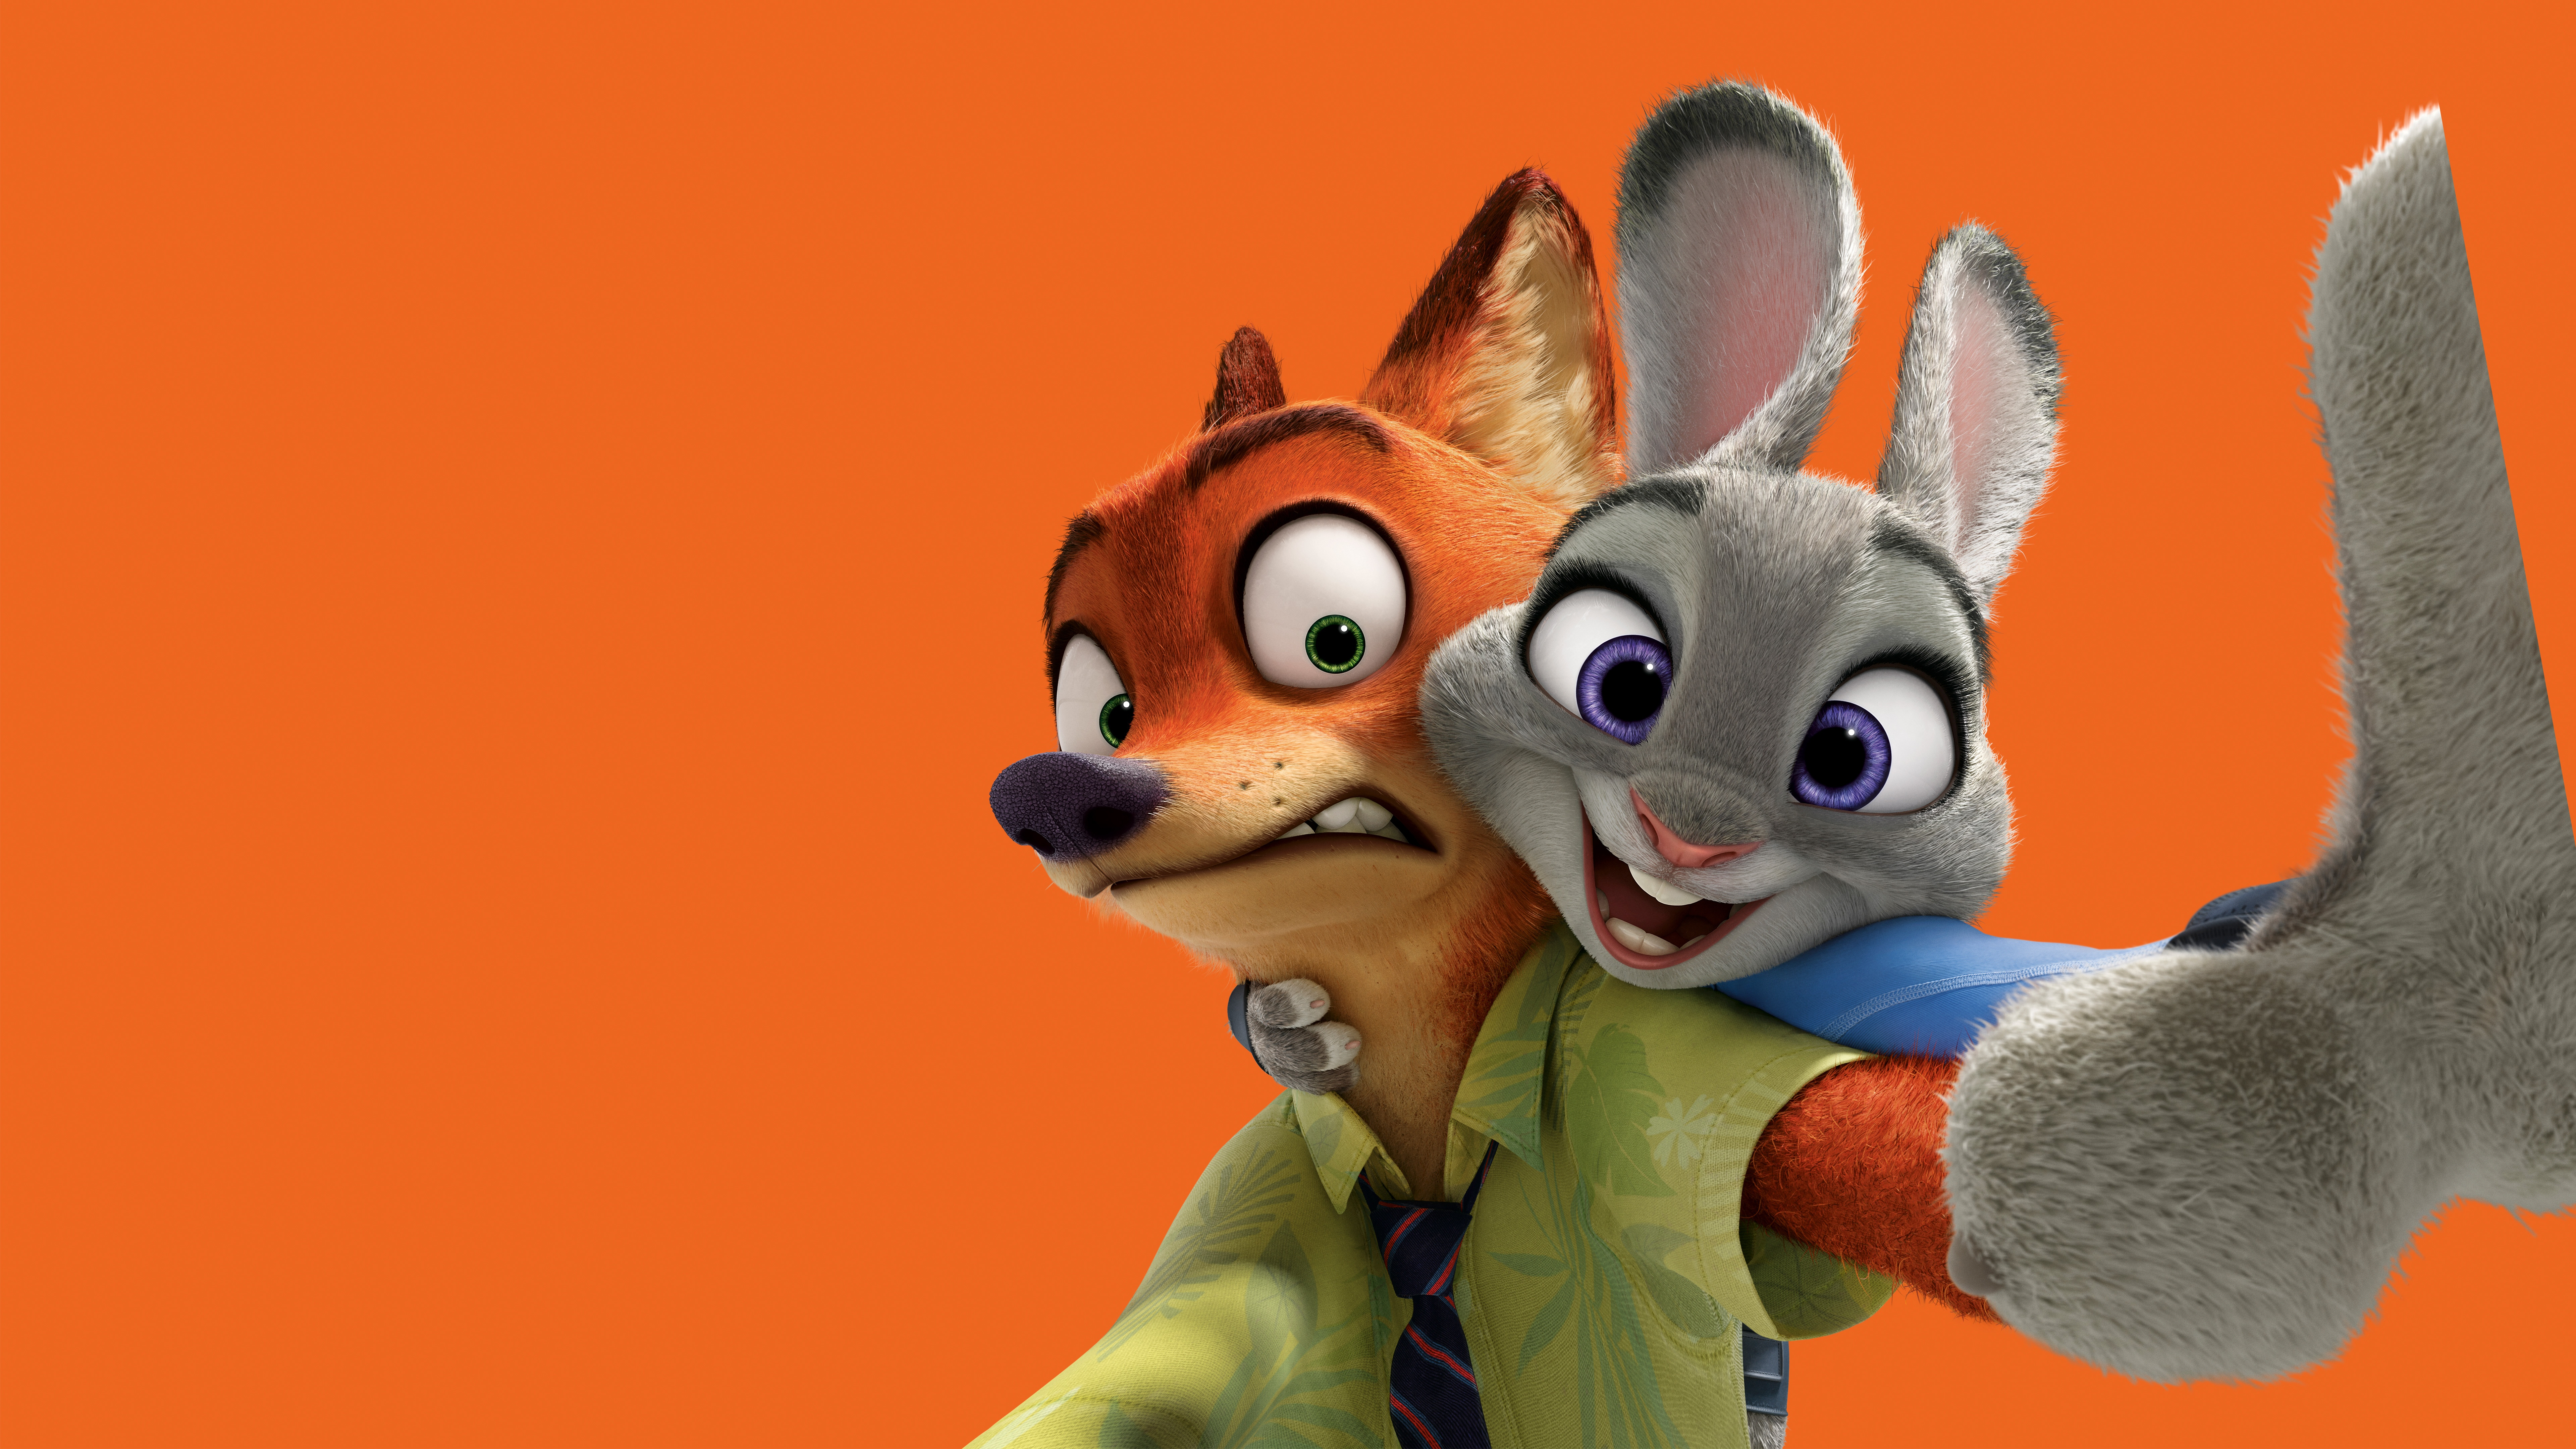 hd wallpaper background id696458 7680x4320 movie zootopia